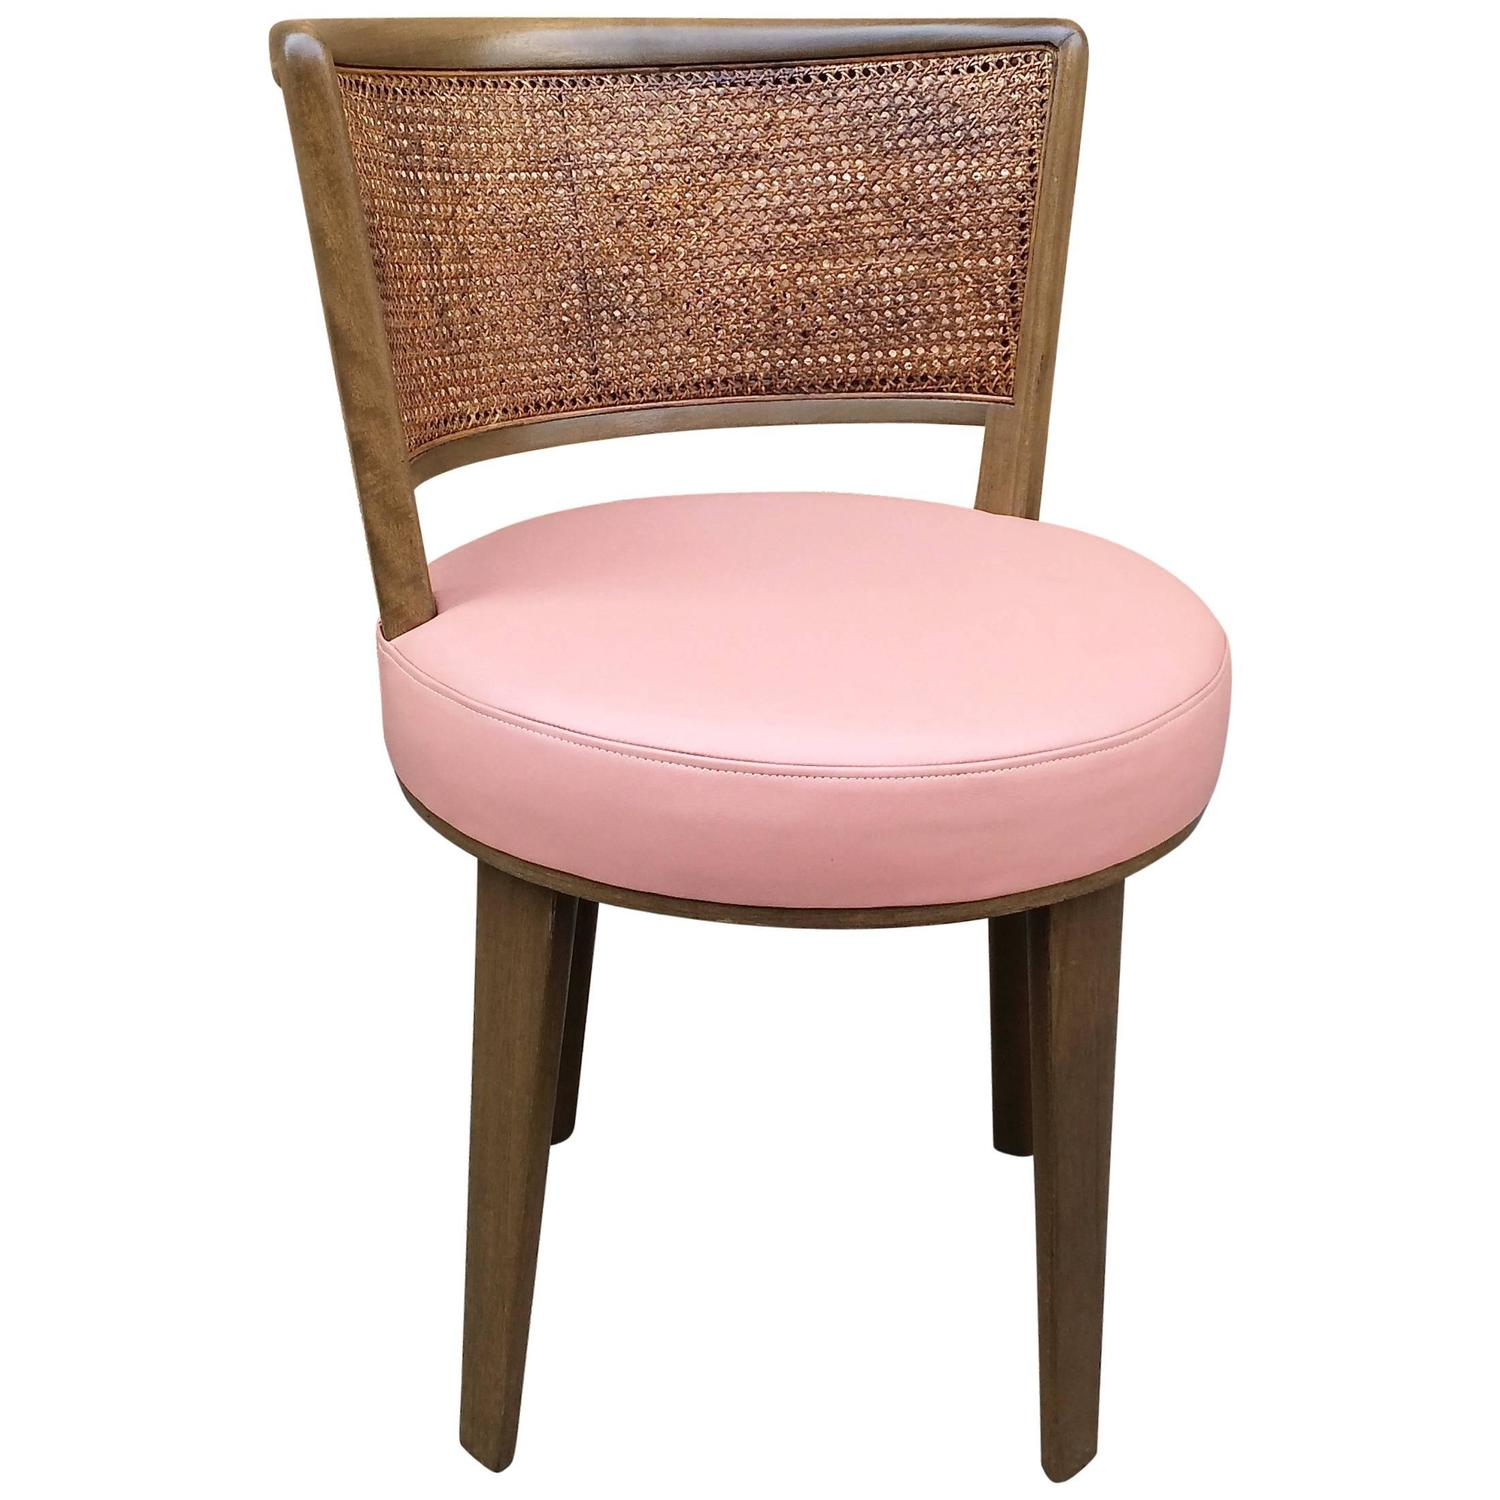 Swivel Vanity Chair By Edward Wormley For Dunbar For Sale At 1stdibs